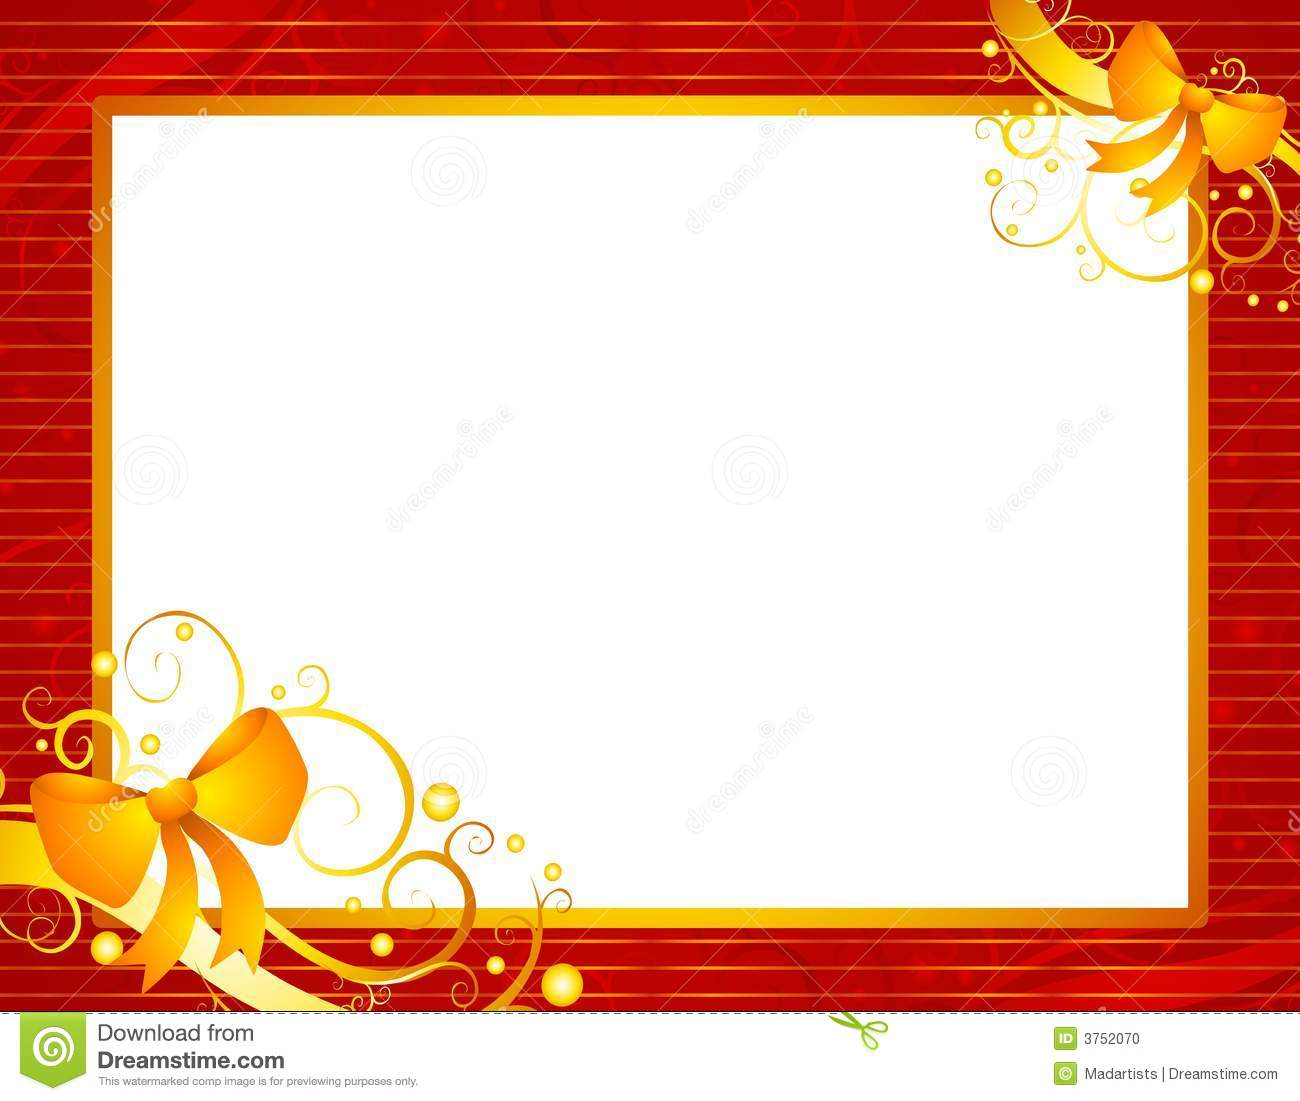 Clip Art Illustration Featuring A Red St-Clip Art Illustration Featuring A Red Striped Frame With Gold-14